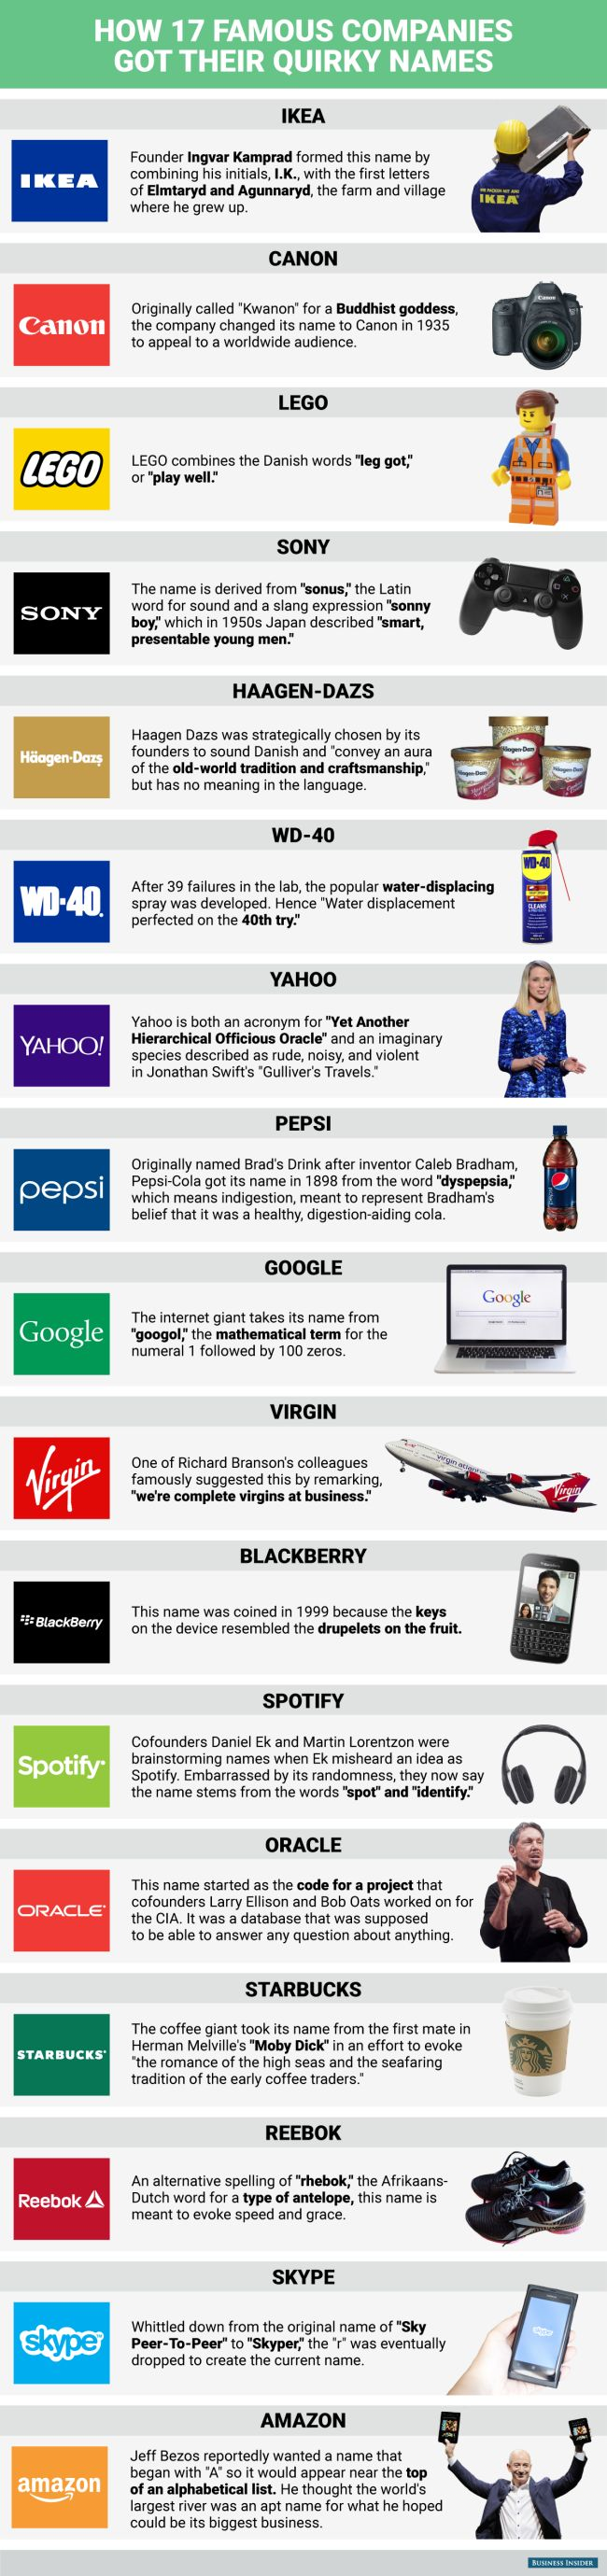 How 17 famous companies got their quirky names  Interesting!  I didn't know!!